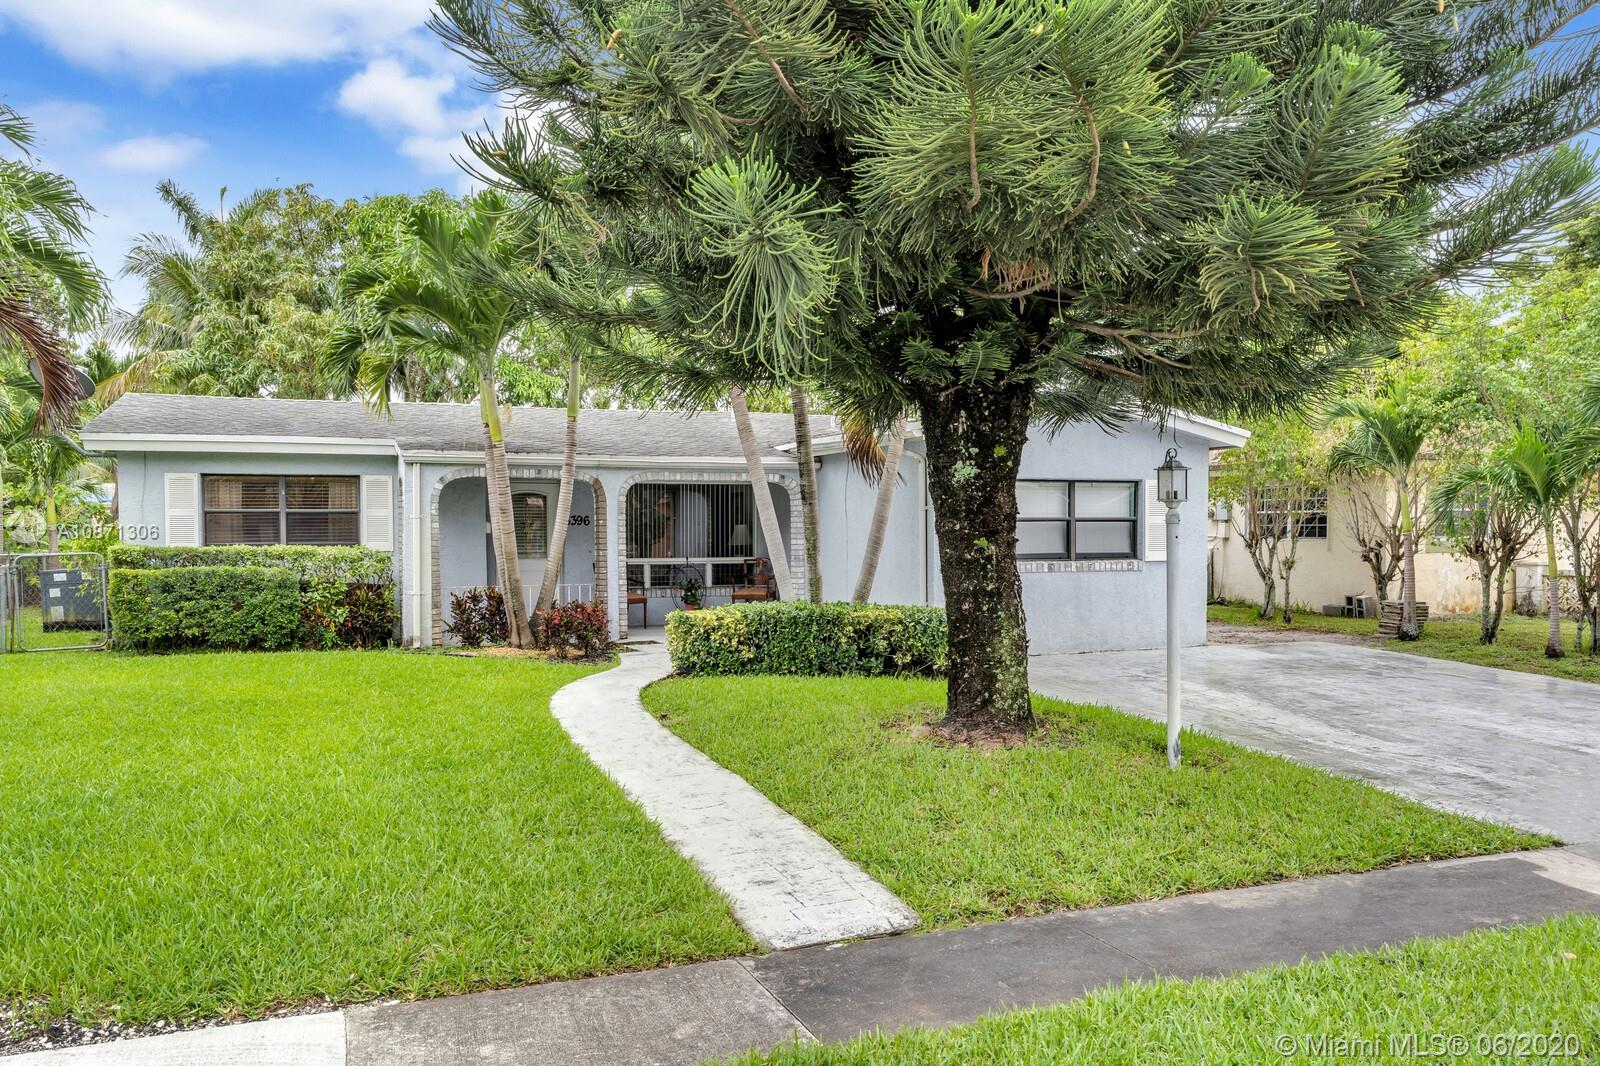 View this Beautiful and priced to sell, cozy three bedroom, two bathroom single family home located in the desirable city of Lauderdale Lake. Features: Kitchen has all stainless steel appliances with the convenience of full sized washer and dryer. This home also boasts a full sized Living, Family, and Formal Dining room. The property has a large backyard with patio area and lake view, perfect for entertainment!! This residence has been meticulously maintained. Owner took really good care of this home!! OPEN HOUSE Saturday June 13th from 12-5